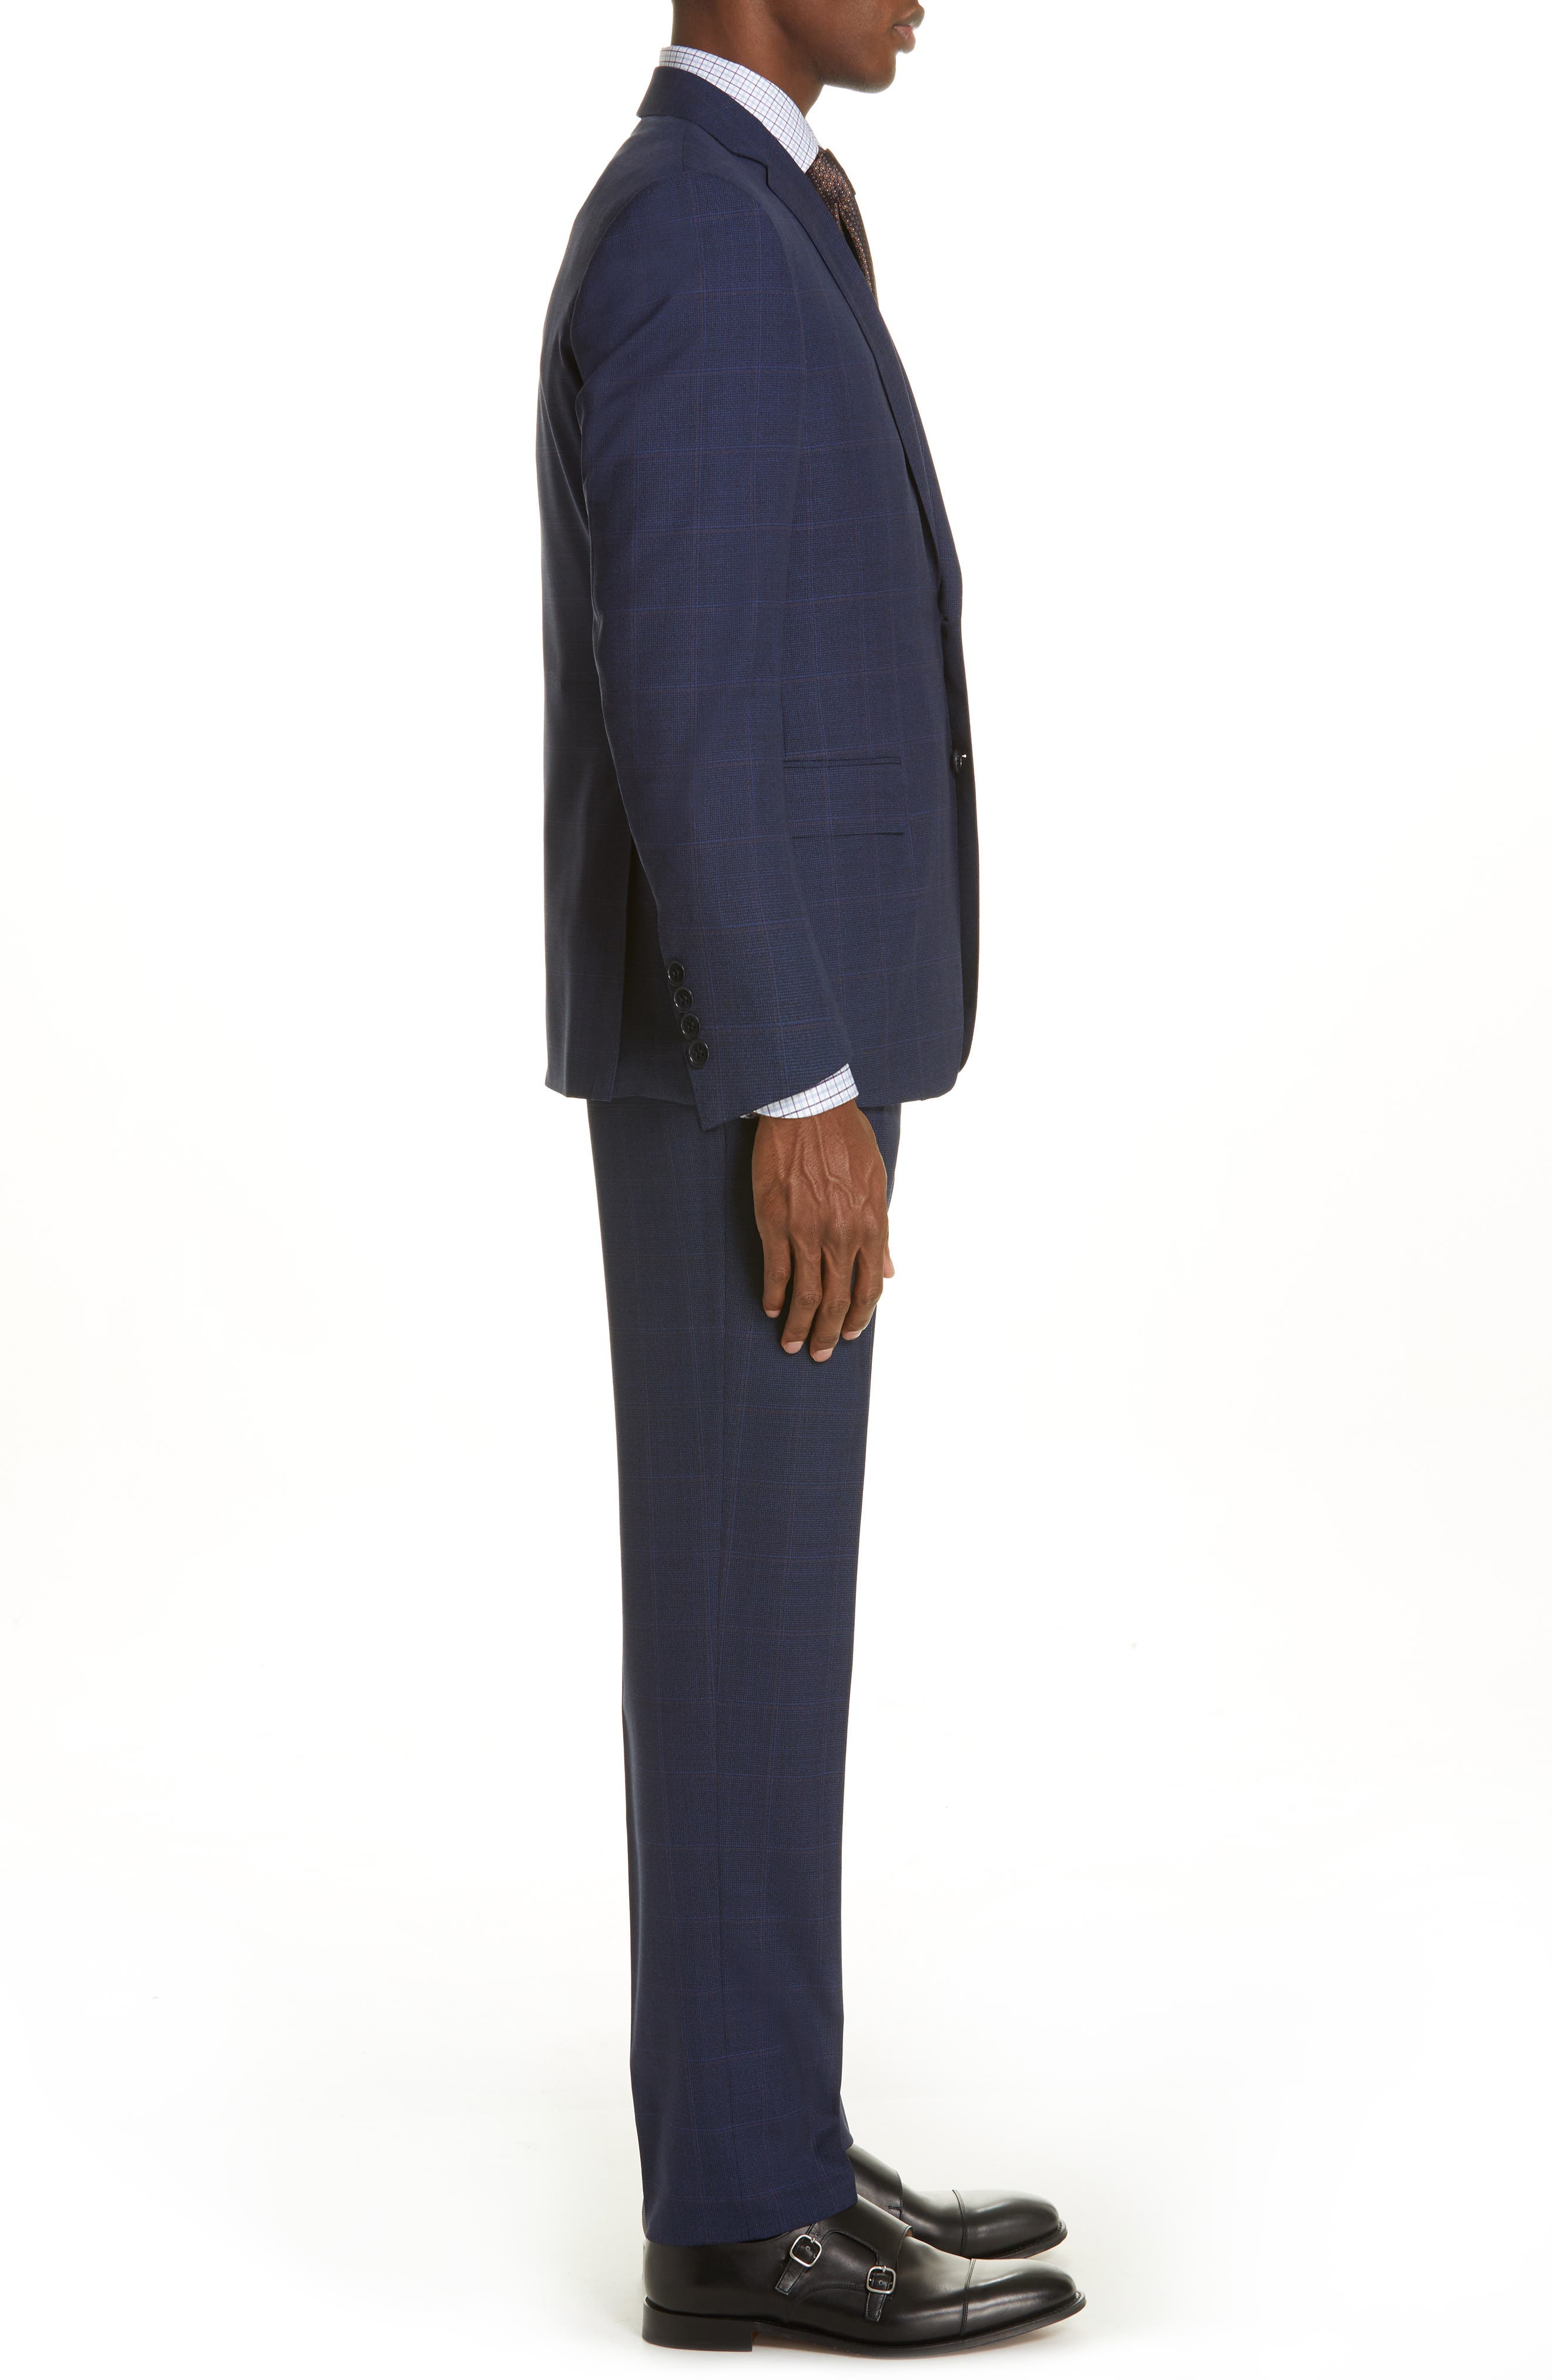 CANALI, Siena Soft Classic Fit Plaid Wool Suit, Alternate thumbnail 3, color, NAVY